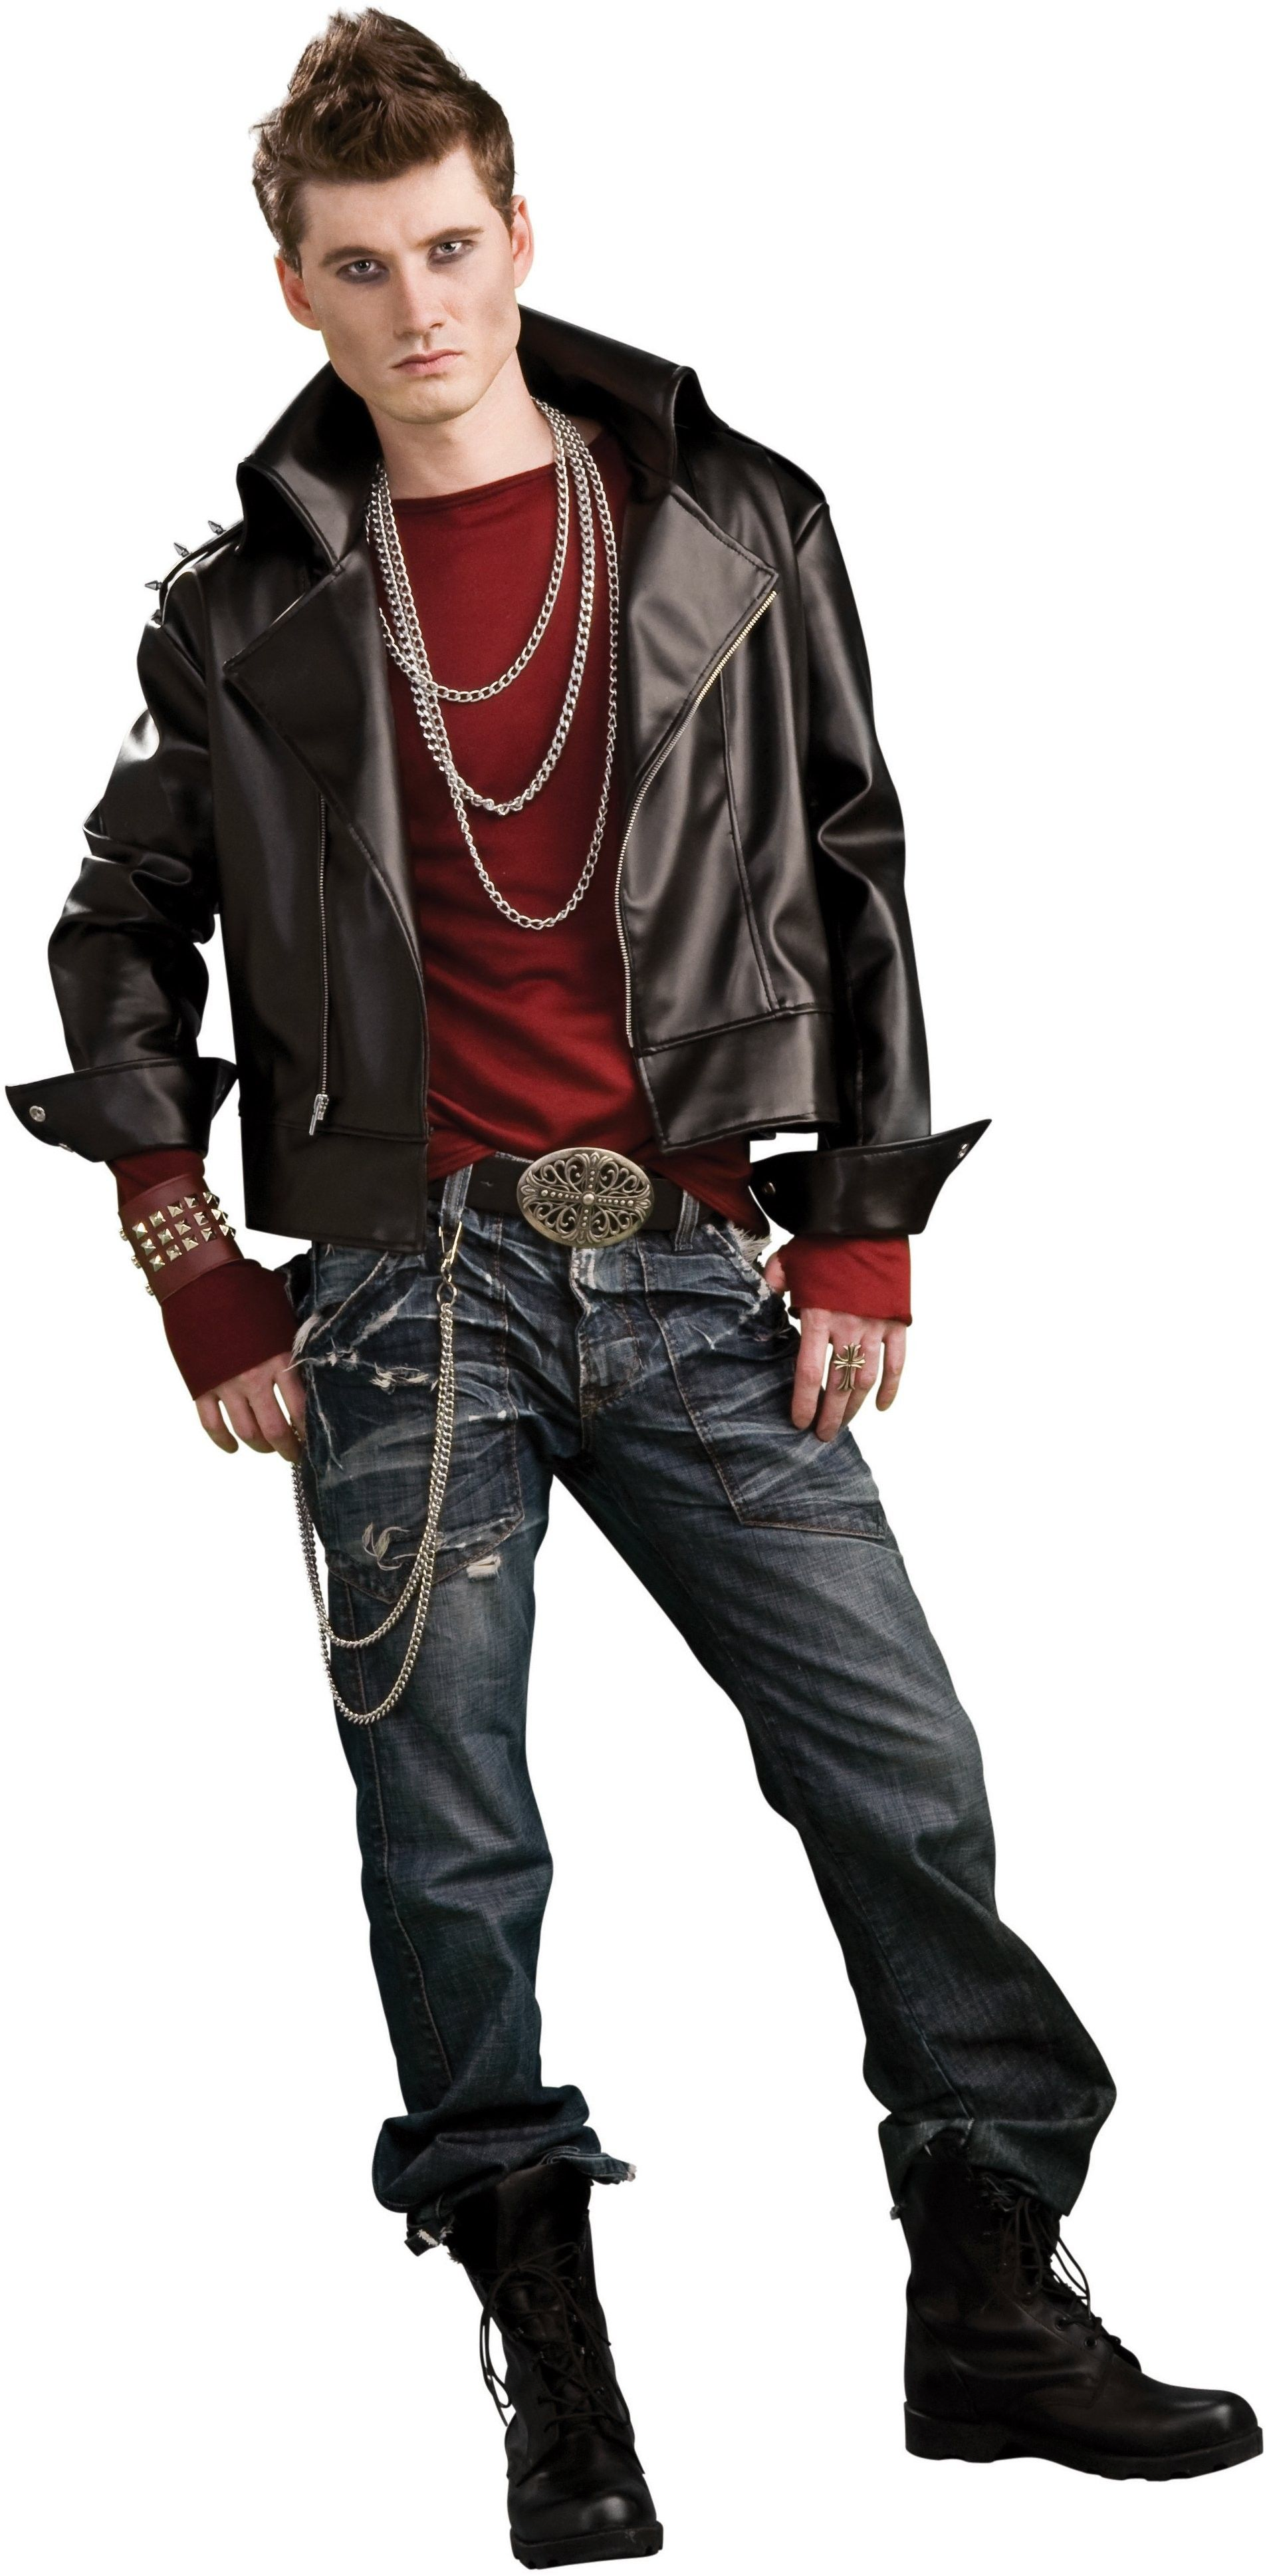 Diy Vampire Costume Men Diy vampire costume men Biker